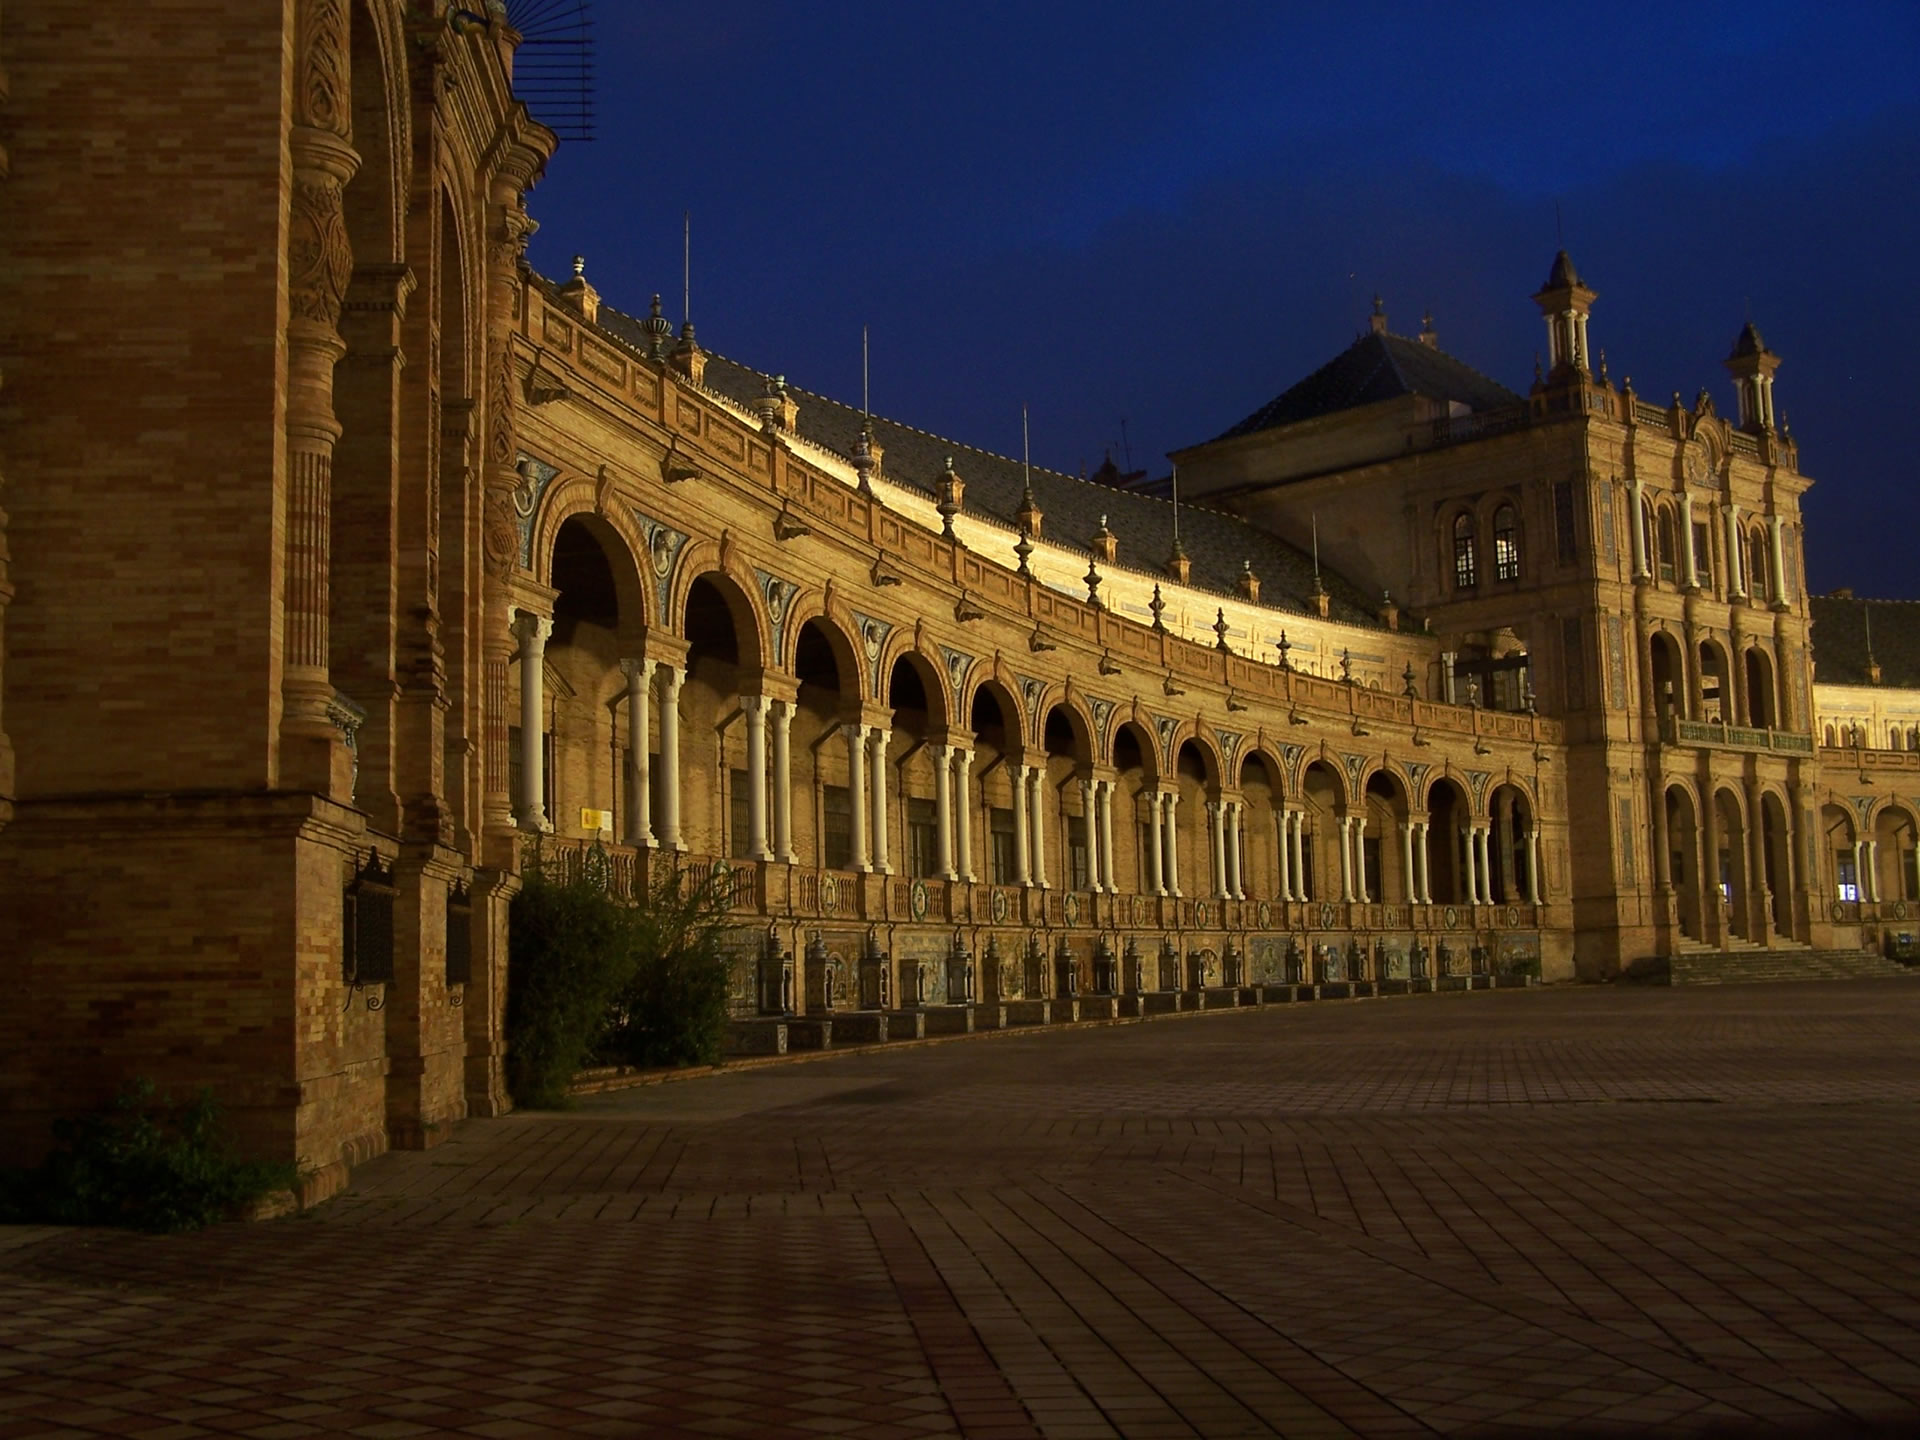 The Aura and Old World Charm in a Modern Vibrant City - Seville